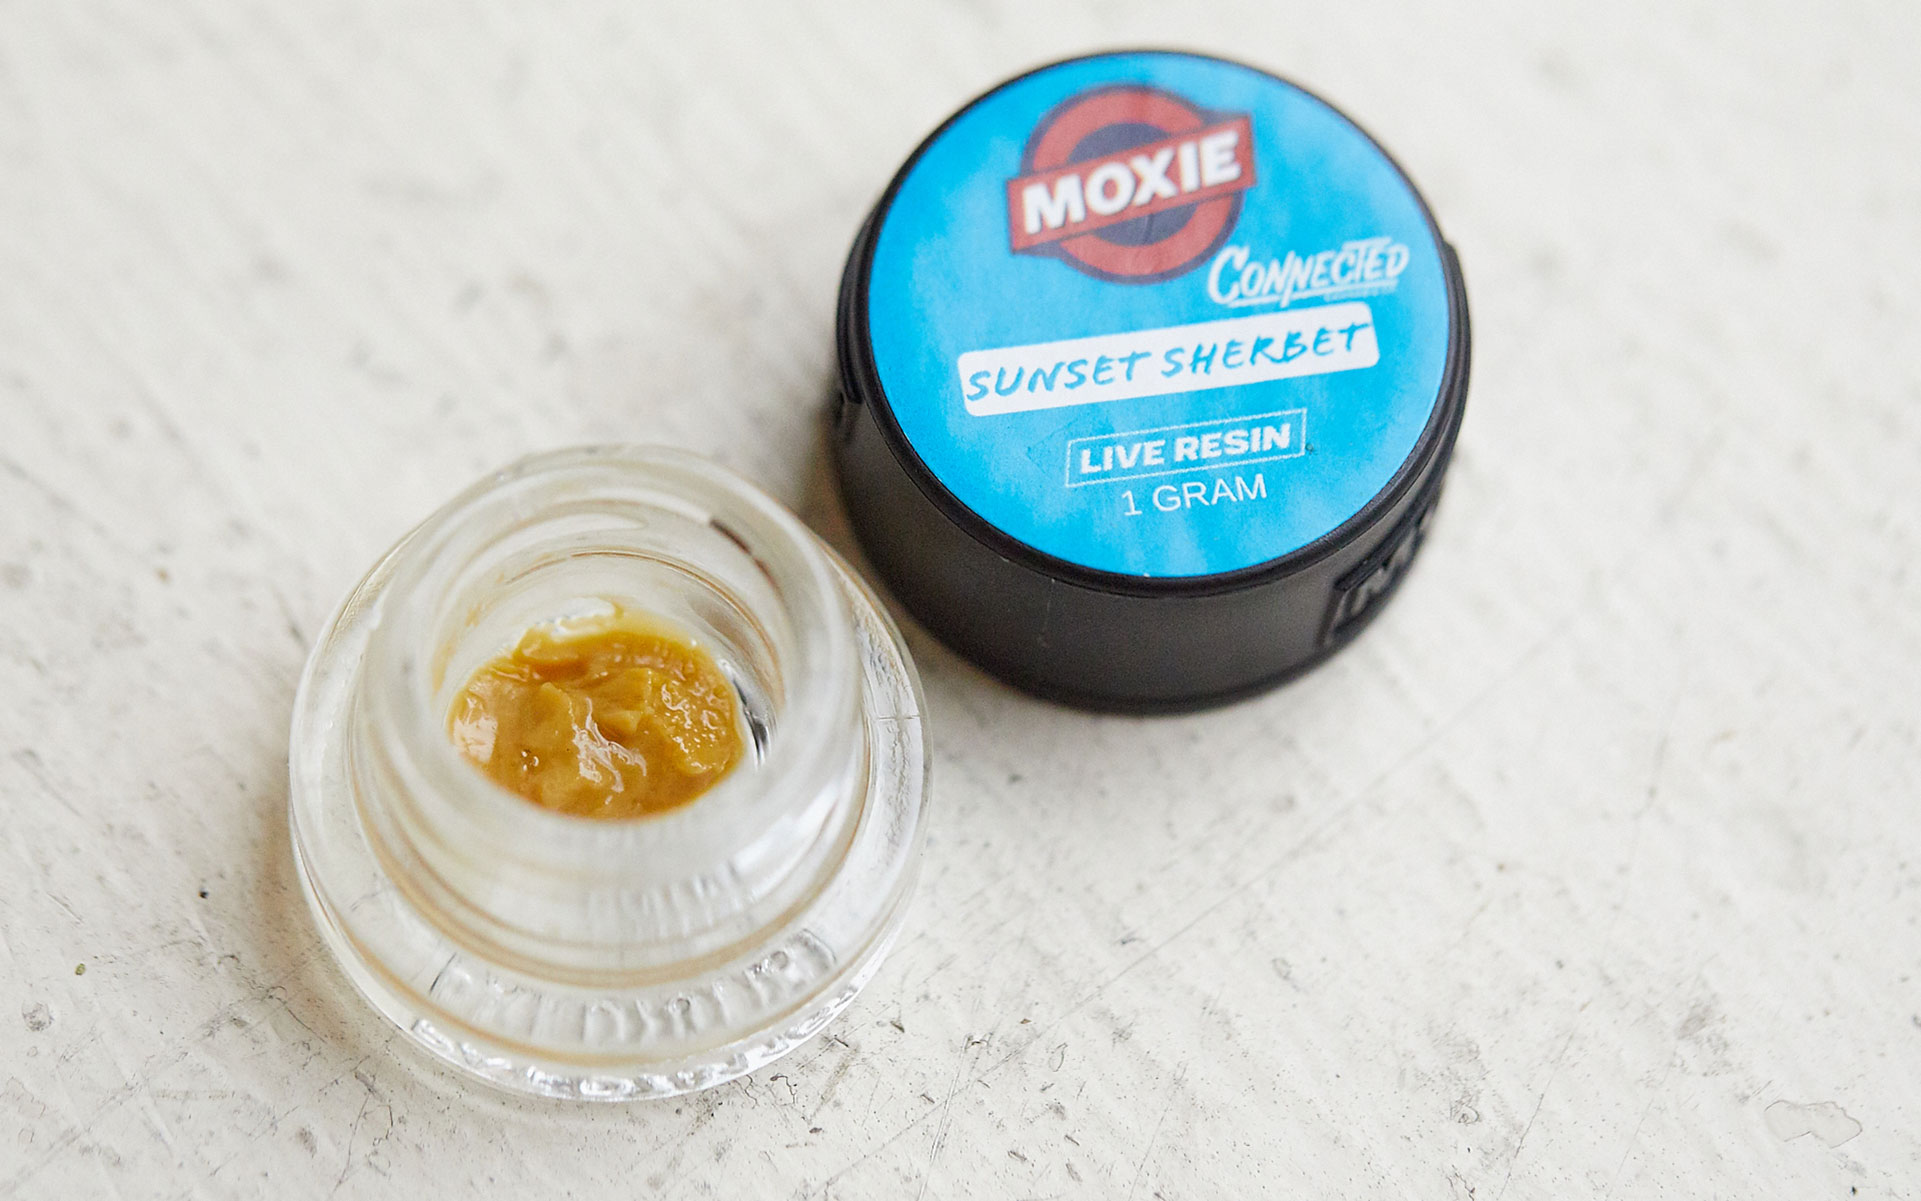 Sunset Sherbert Connected Moxie Cannabis Concentrate hash live resin badder